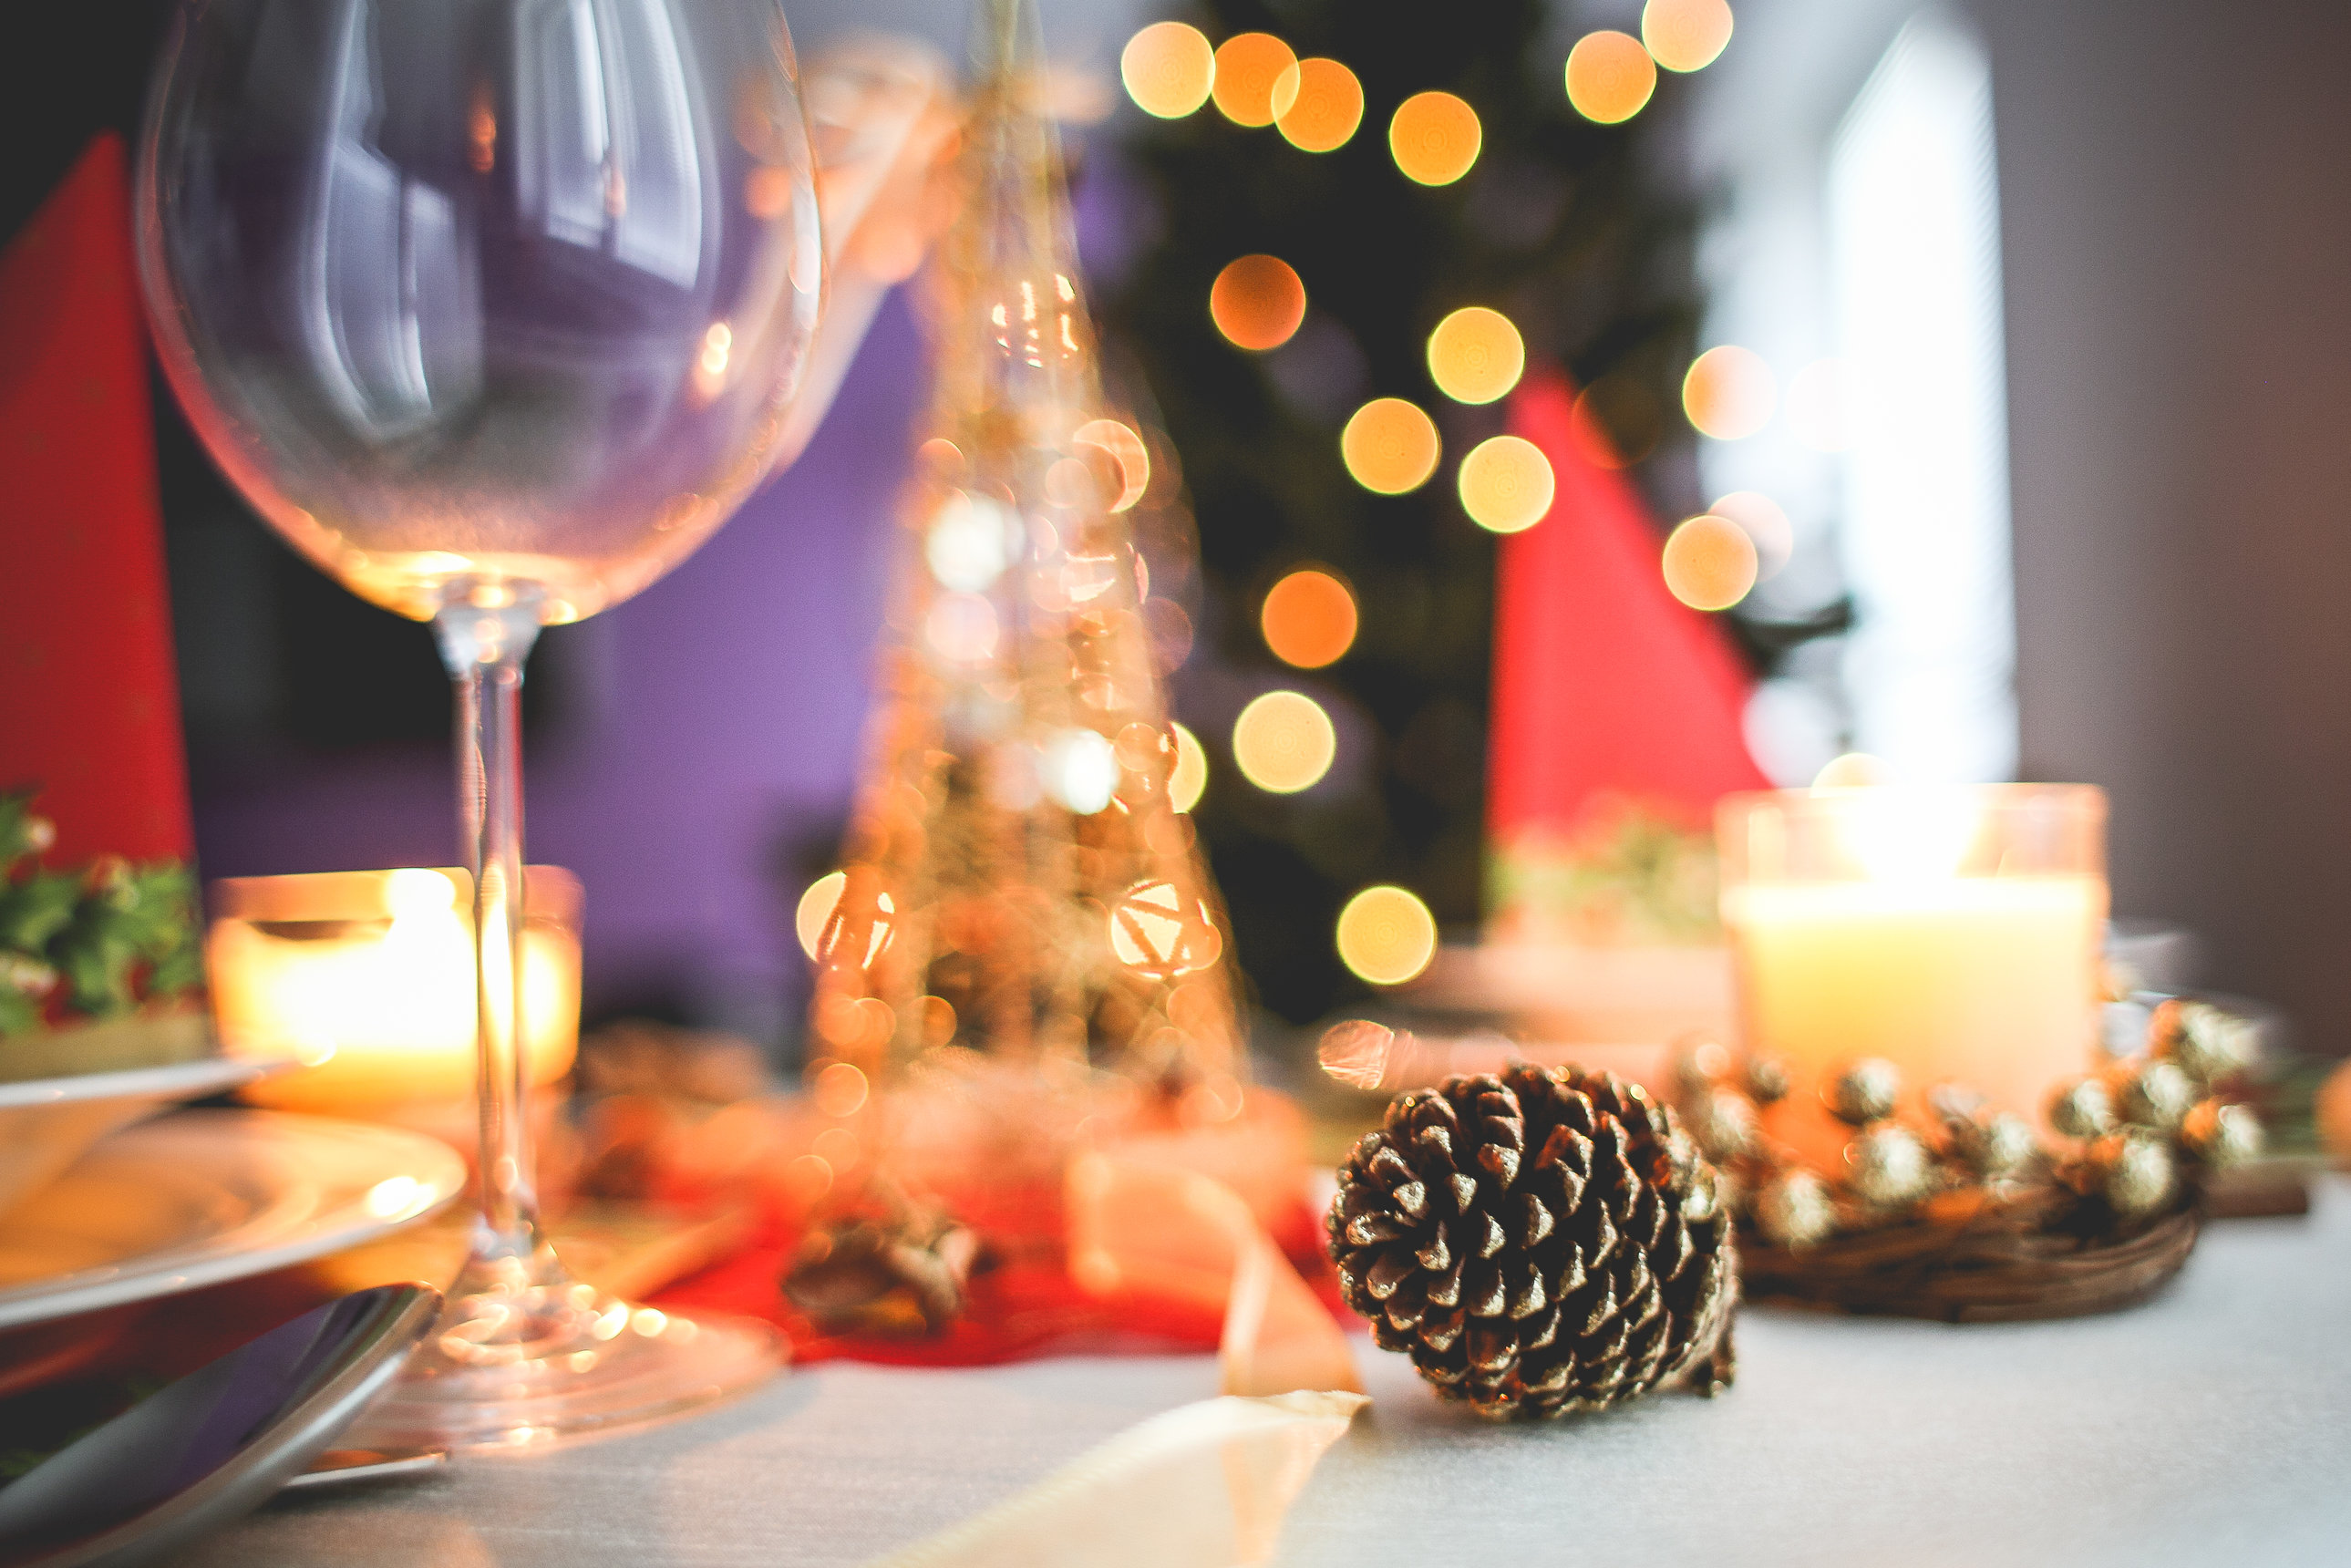 10 Tips On How To Host A Successful Holiday Party